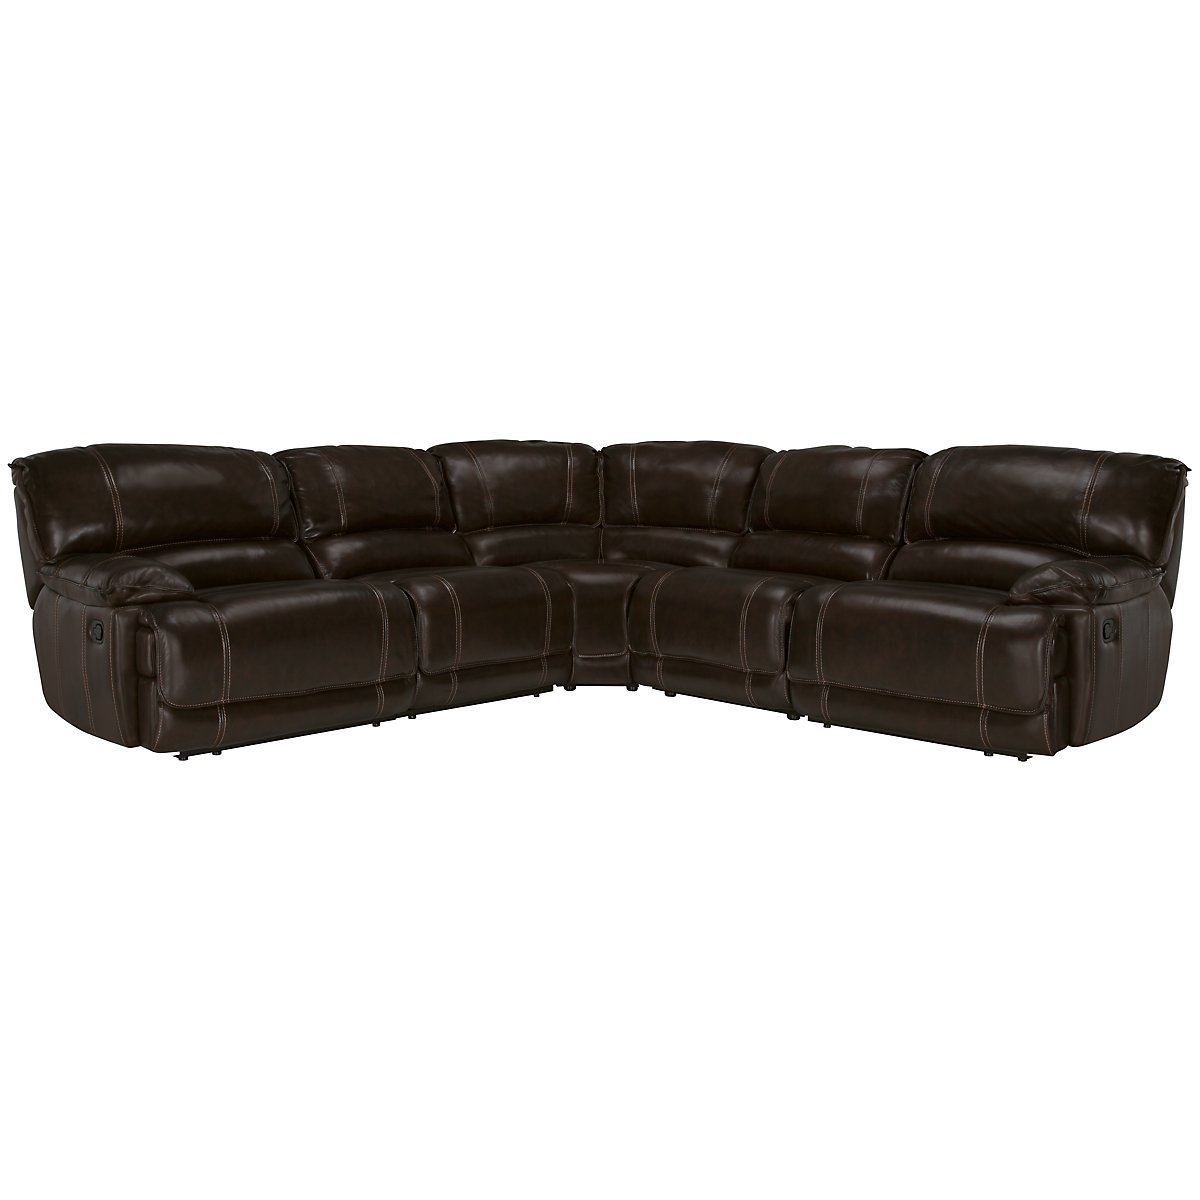 Benson Dark Brown Leather & Vinyl Small Two-Arm Power Reclining Sectional